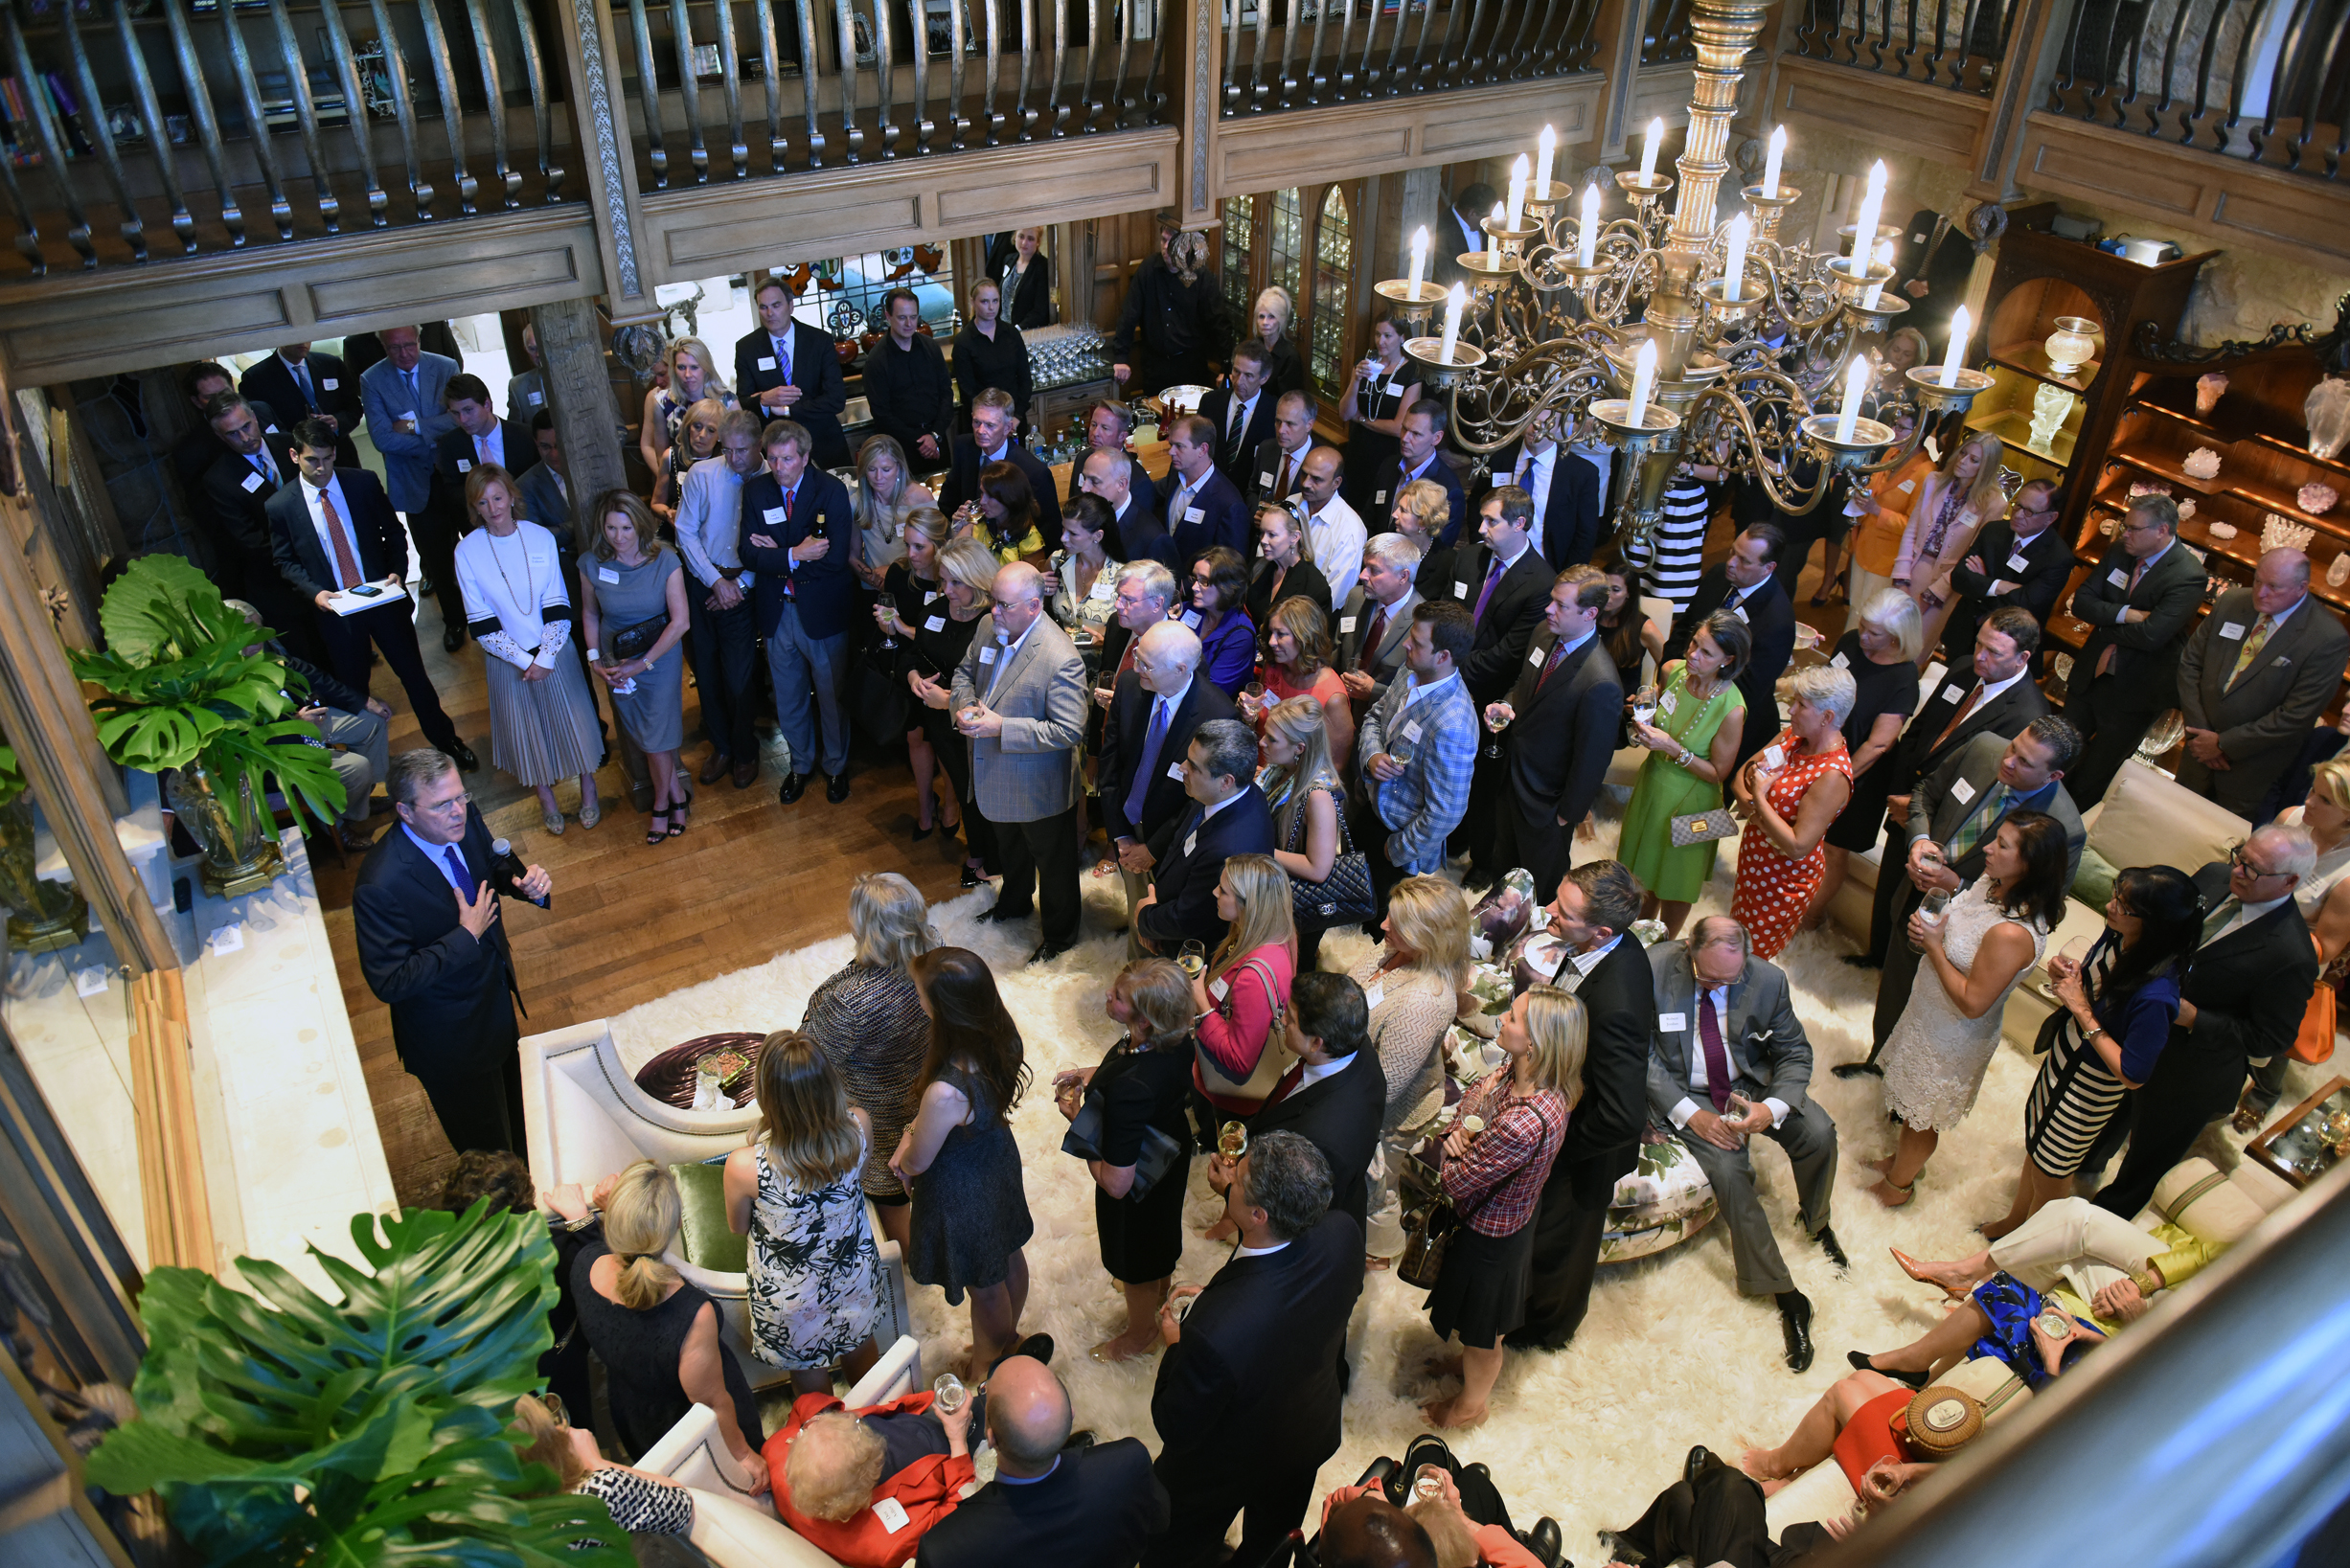 Governor Jeb Bush speaks at an evening reception in Dallas in June 2015. Photo courtesy of Gerlinde Photography / Michael Hopkins.